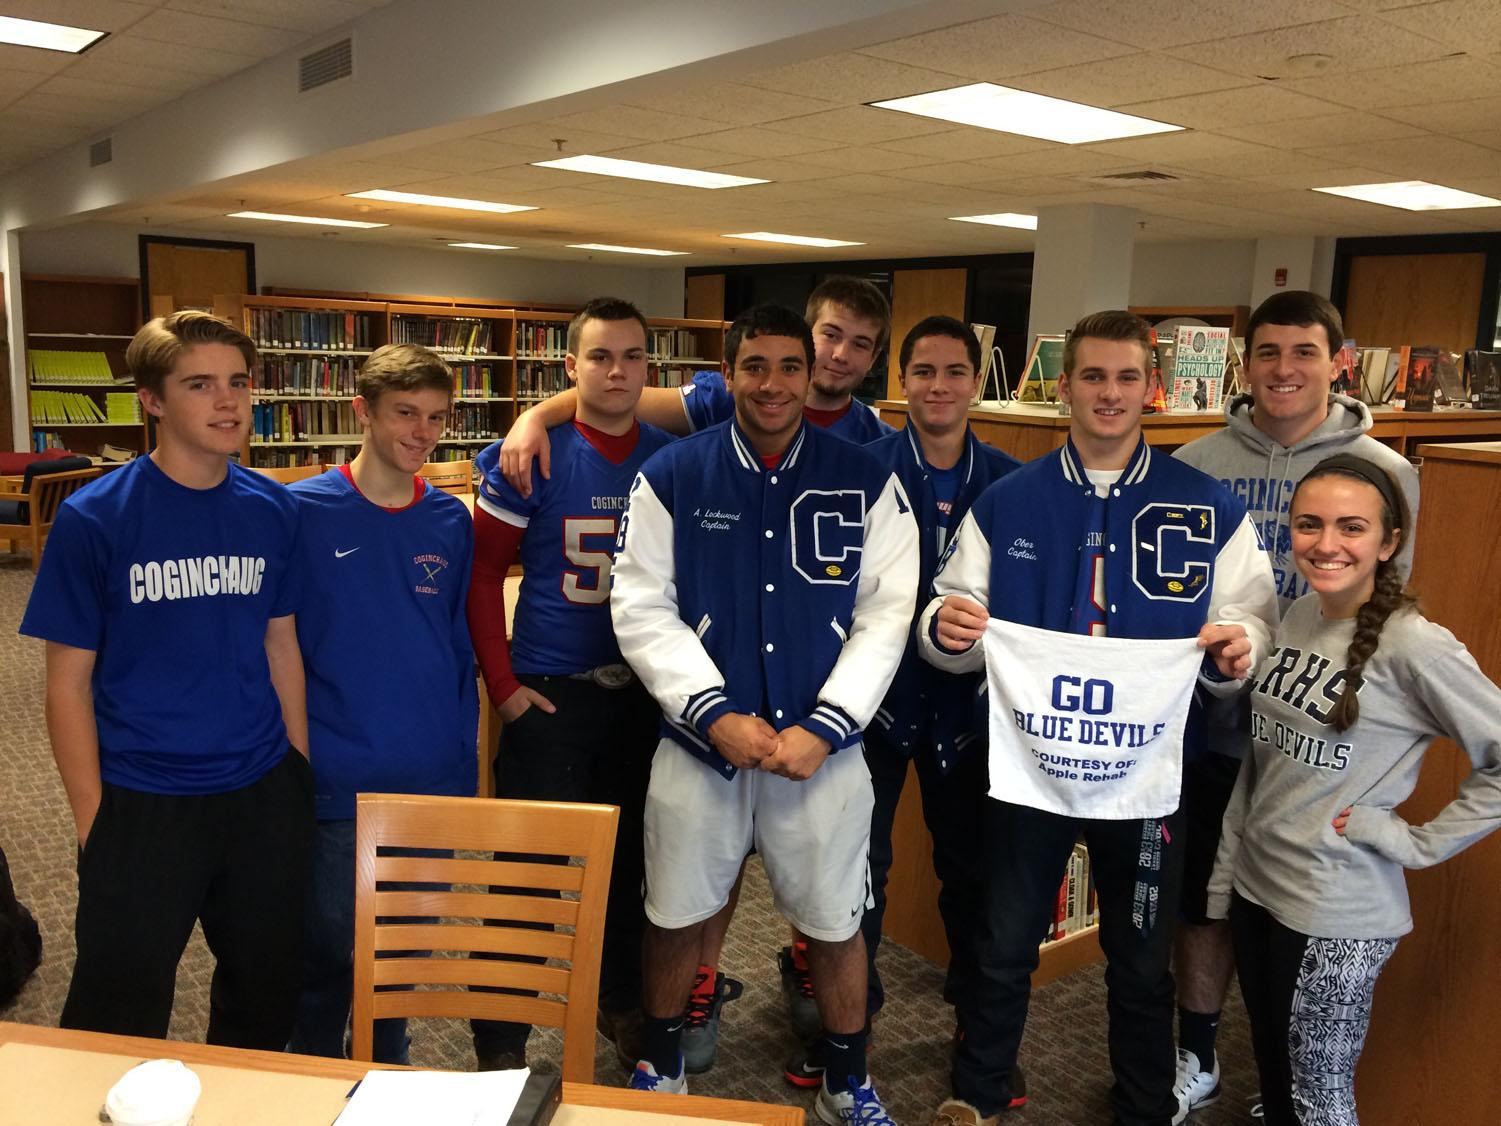 Coginchaug athletes all decked out in their Blue Devil gear.